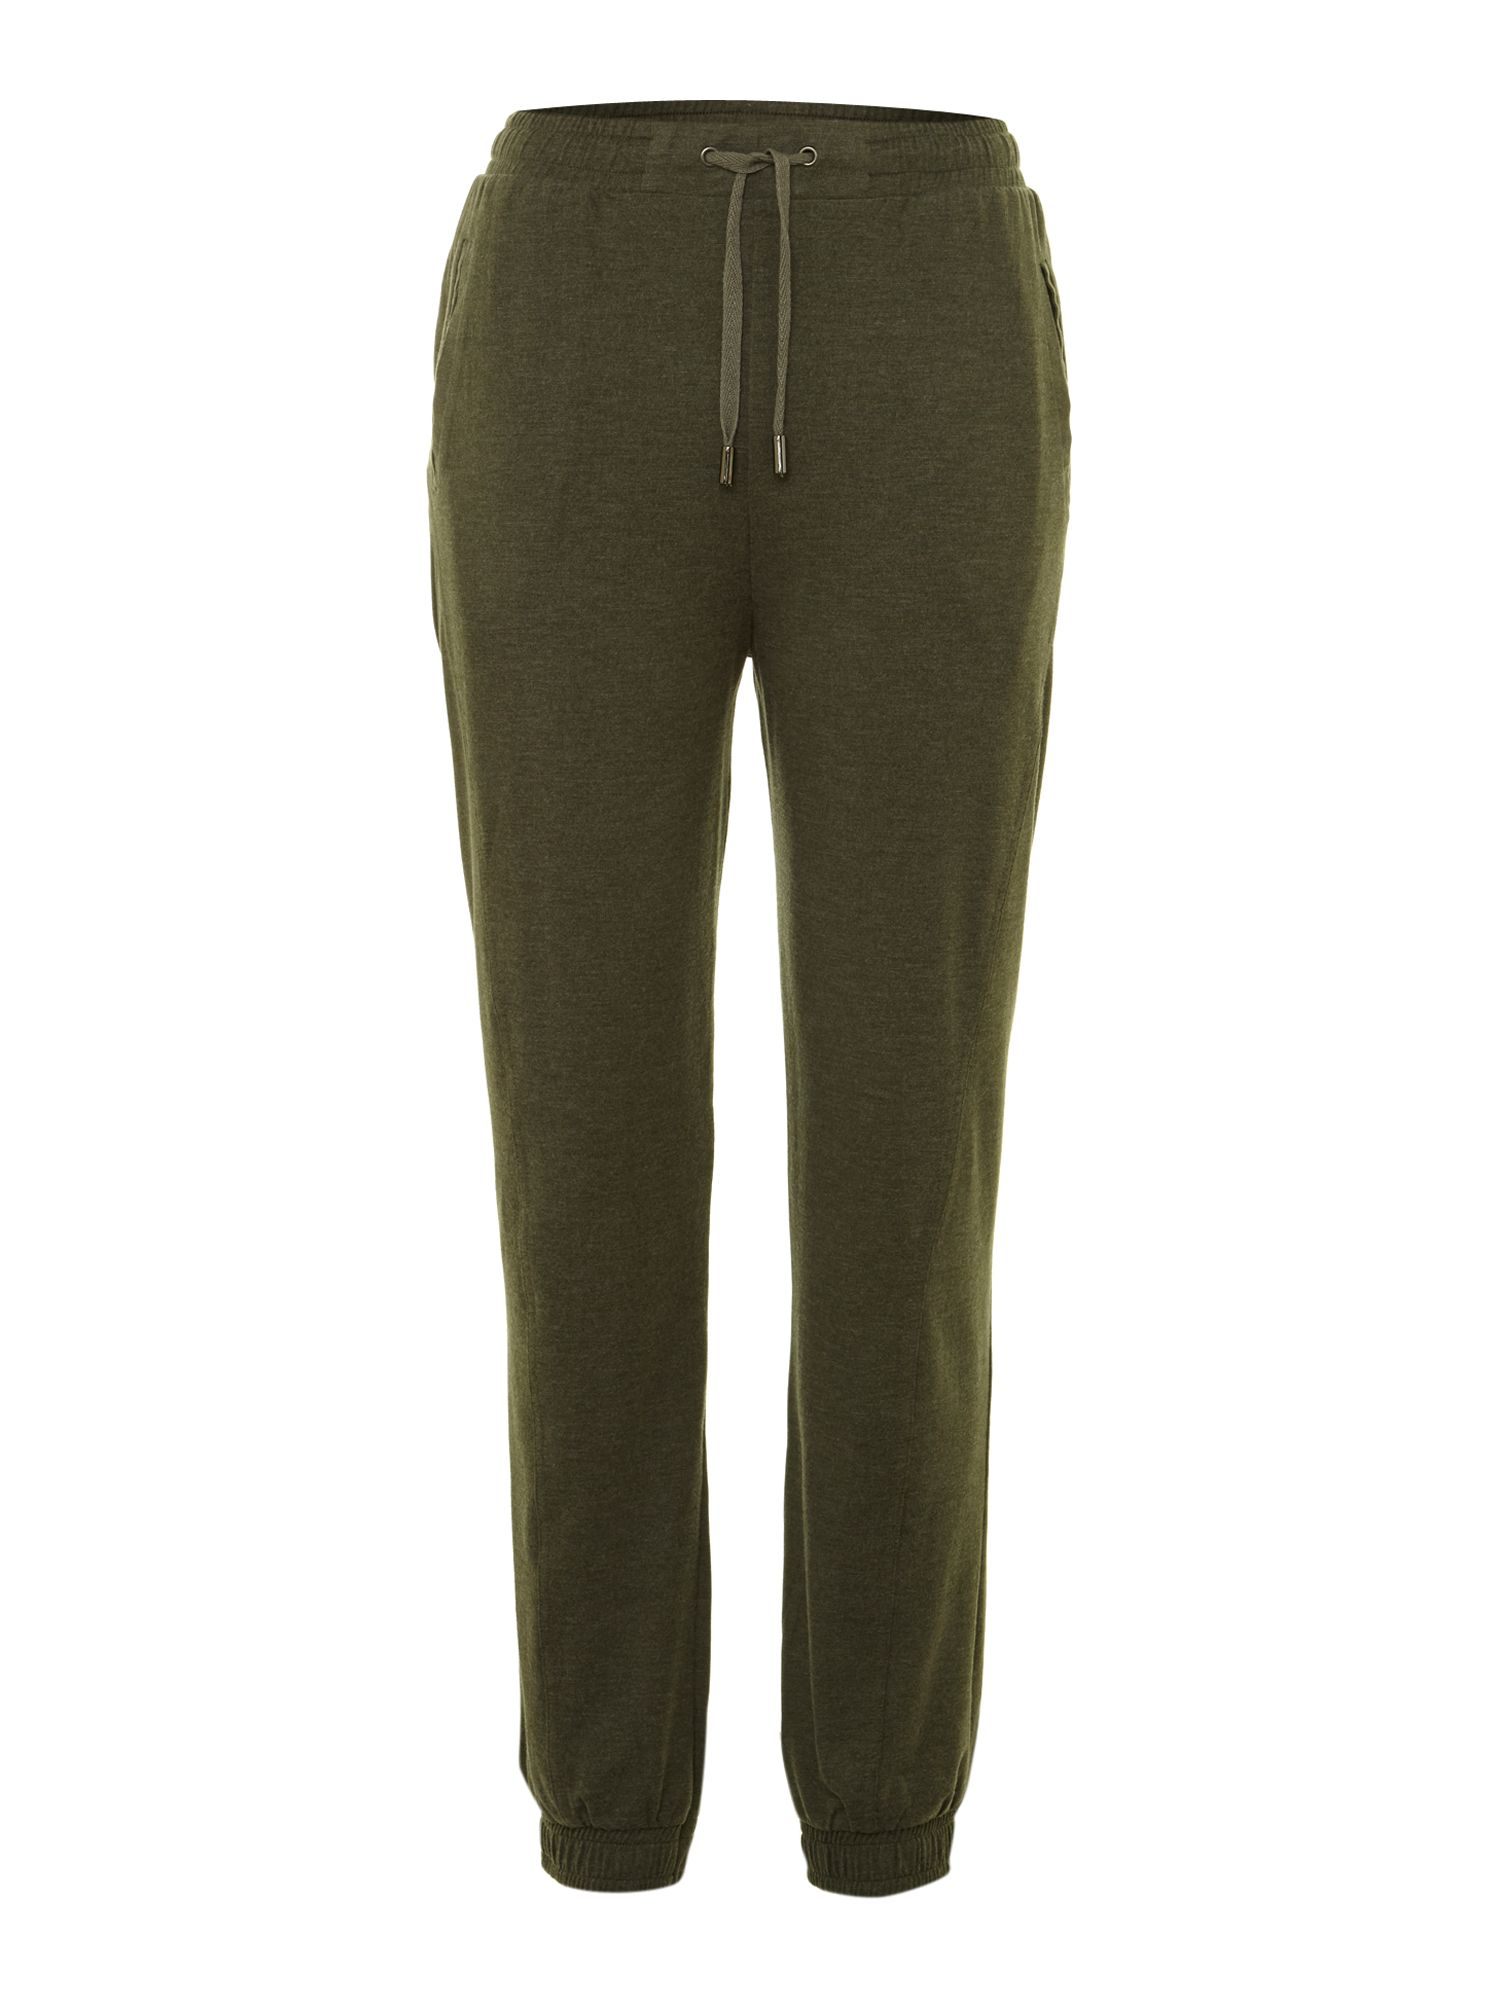 Kate lounge trouser